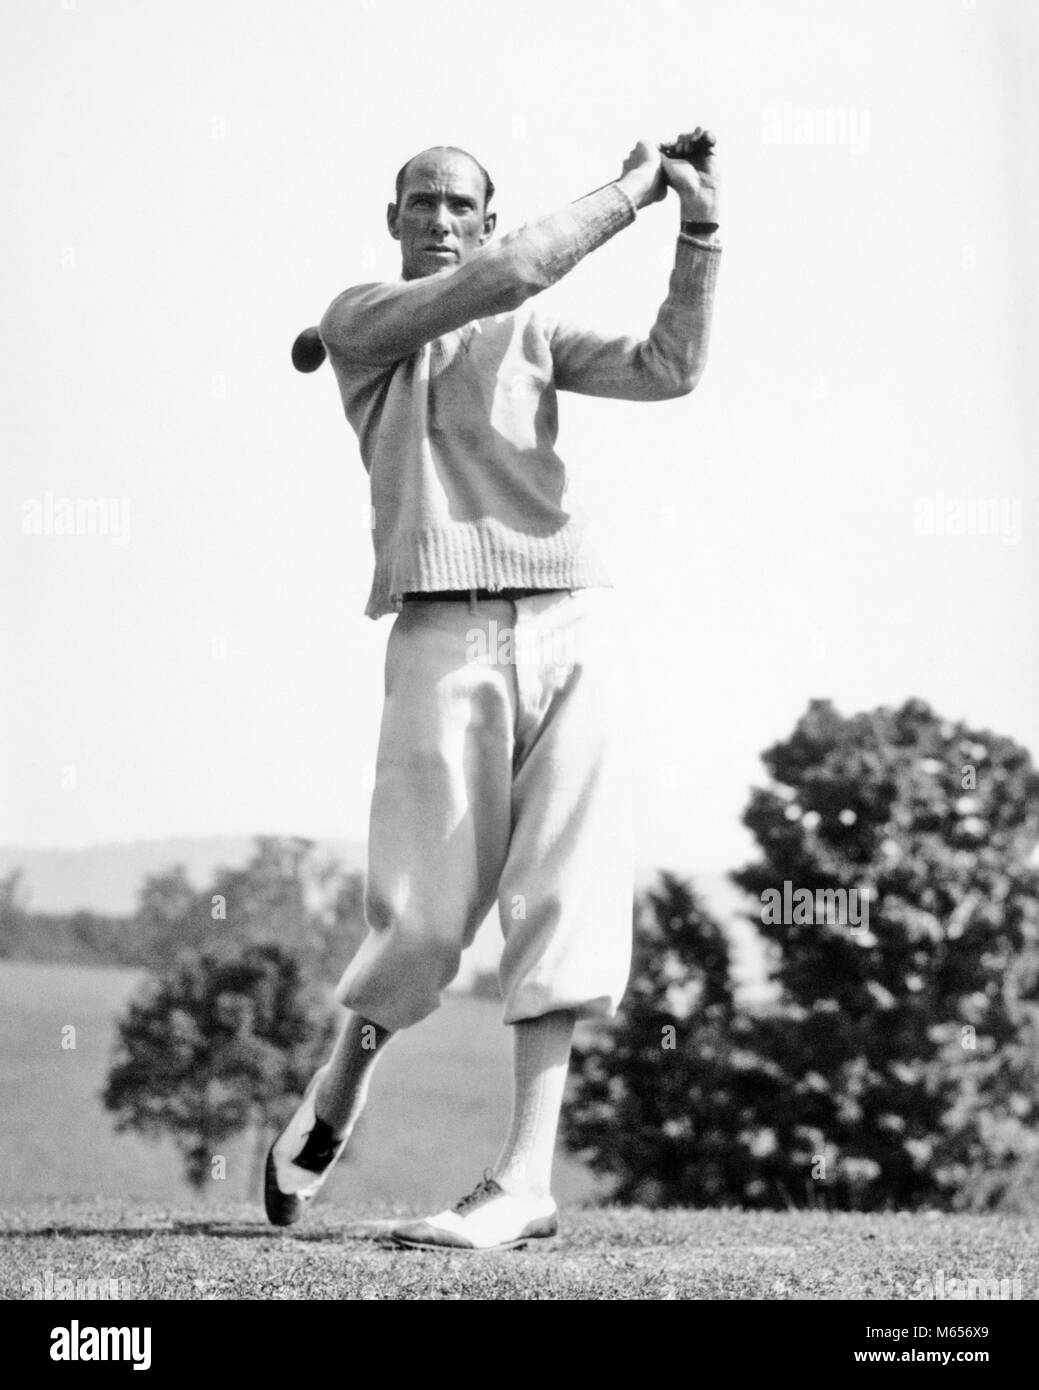 1920s 1930s MAN GOLFER WEARING KNICKERS AND SWEATER SWINGING DRIVER CLUB - g3641 HAR001 HARS HEALTHINESS ONE PERSON - Stock Image